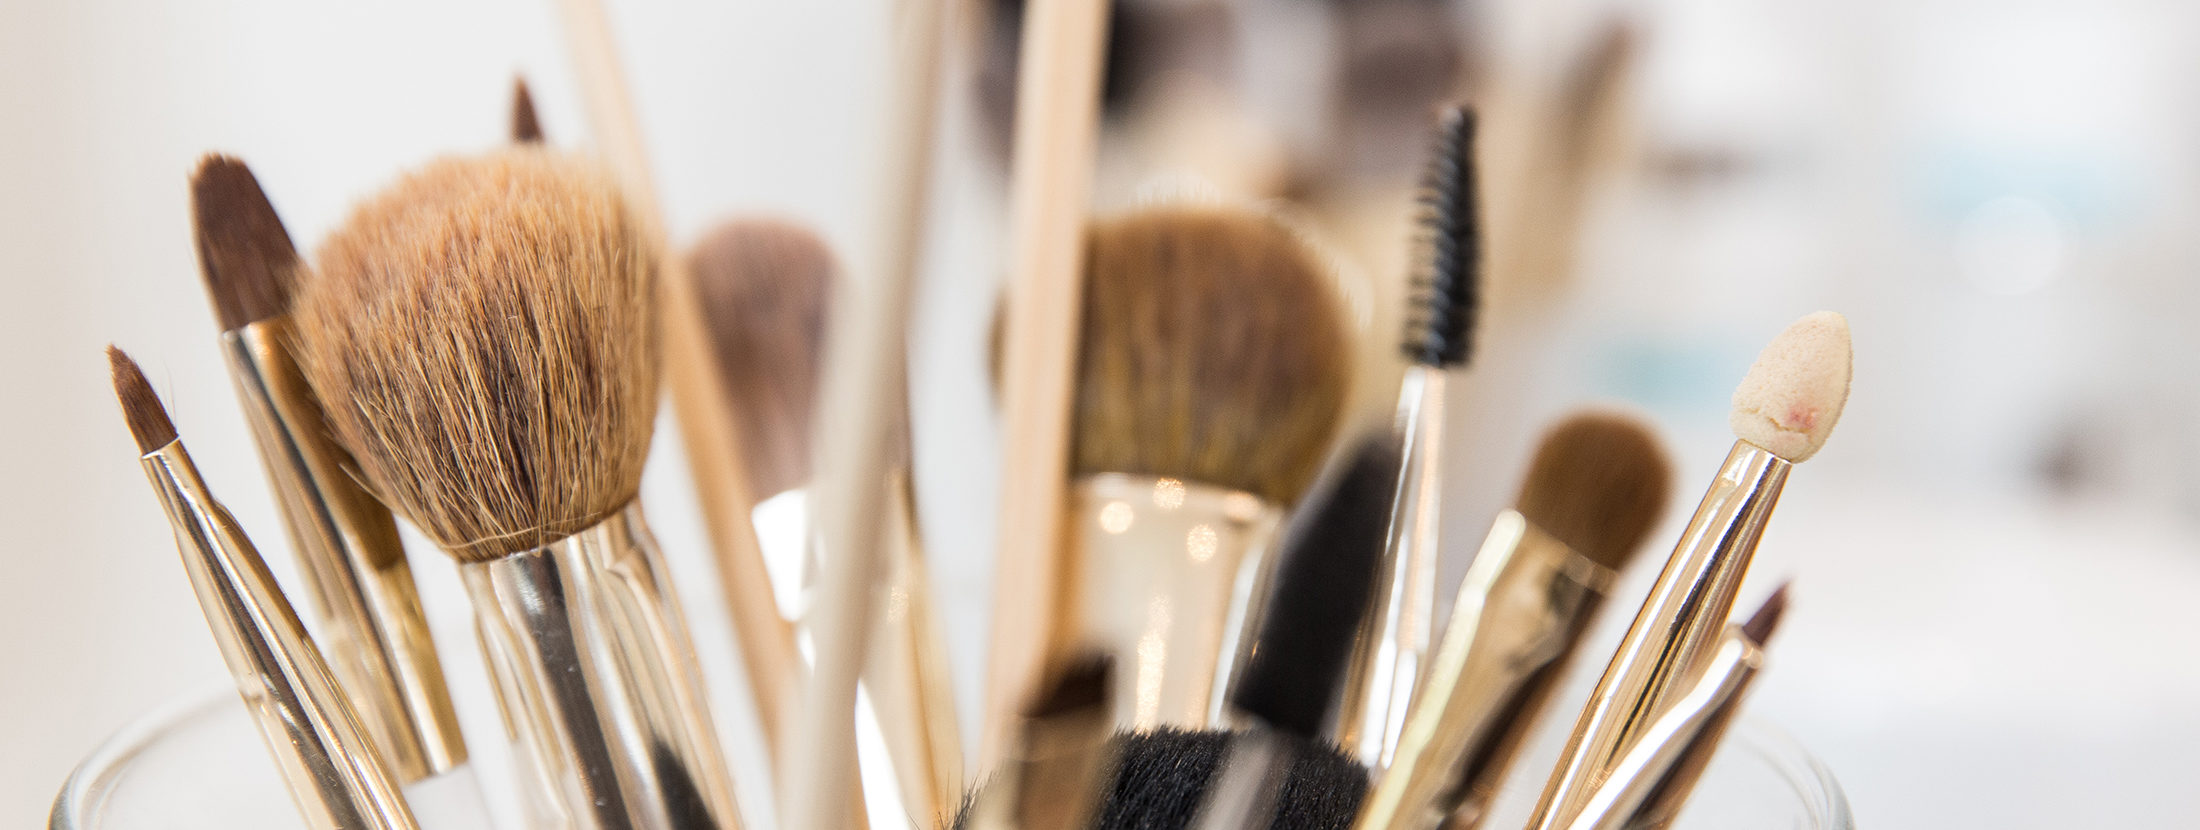 Diverse Pinsel und Makeup-Equipment